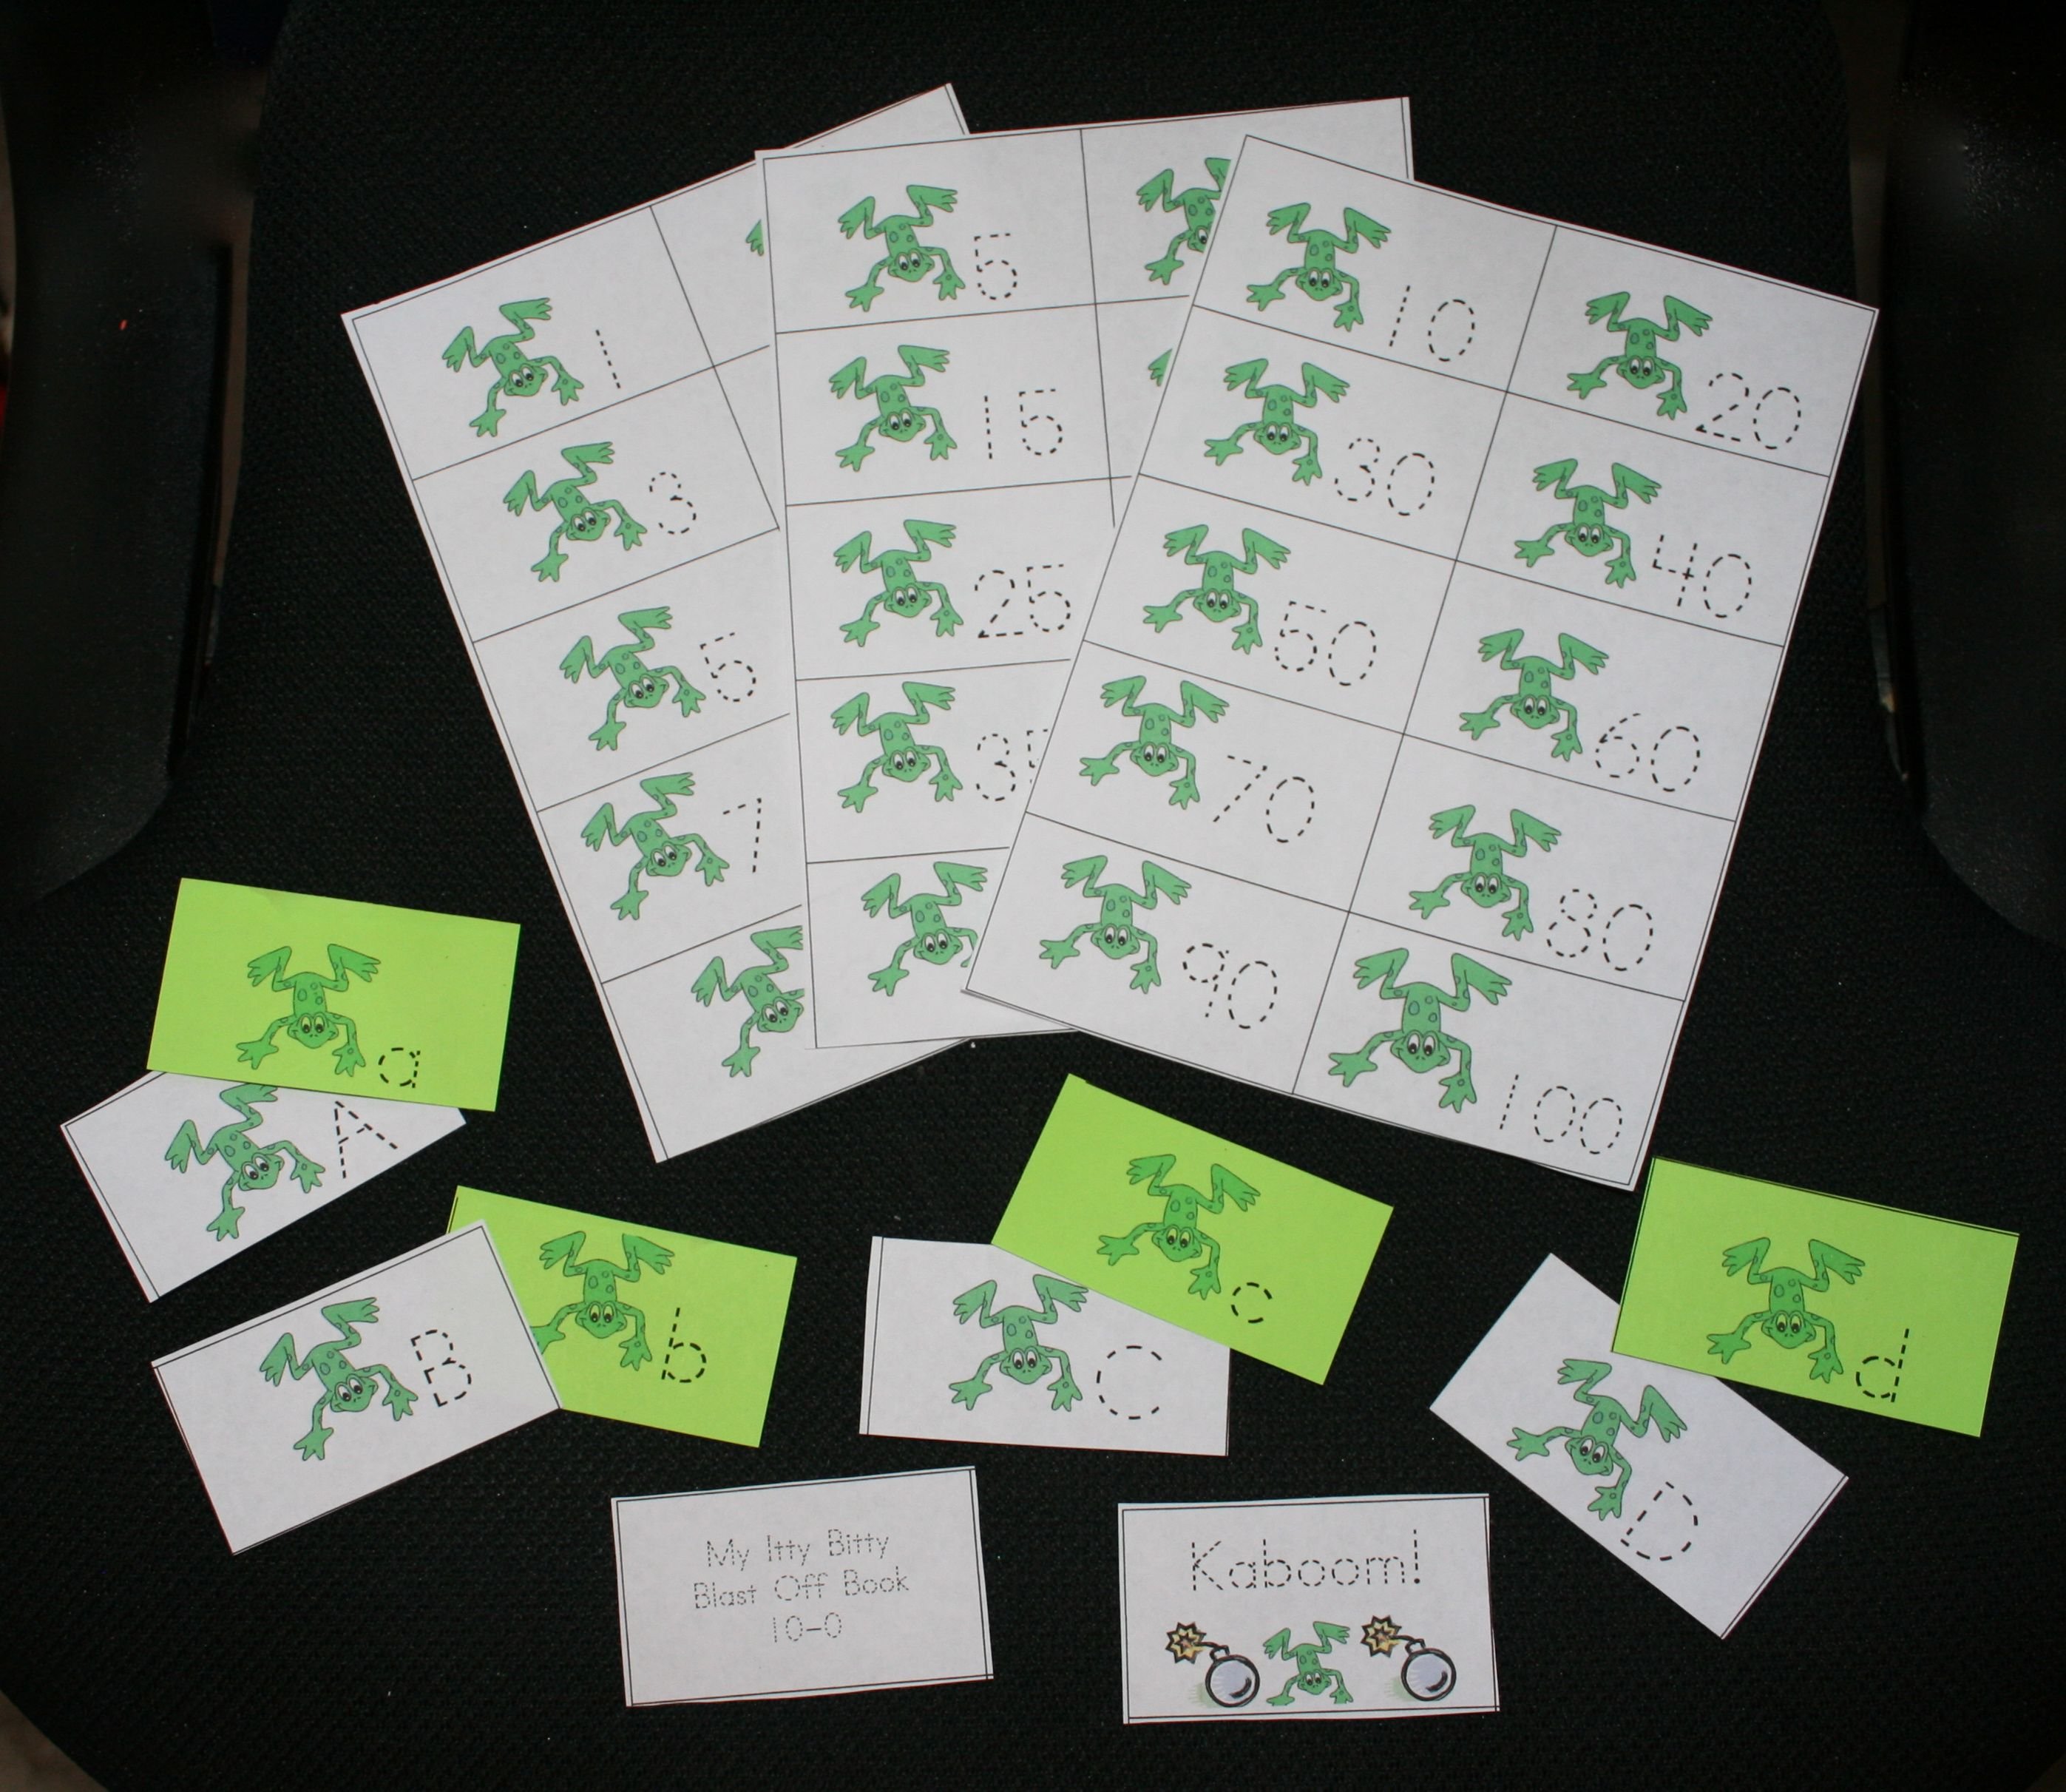 Frog Themed Cards Perfect For Fun Leap Day Games And